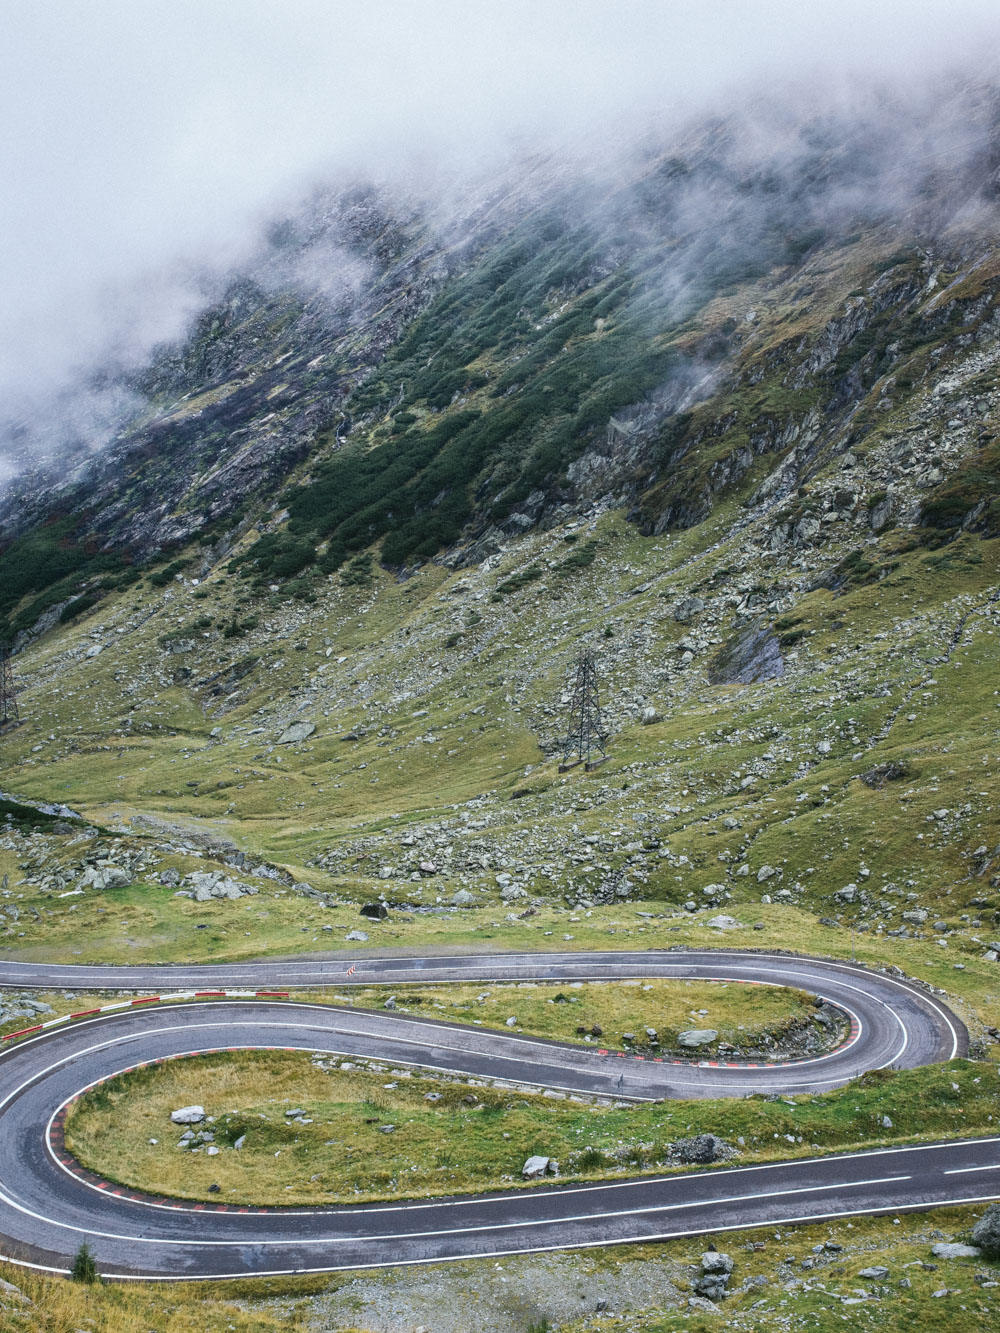 Image of the Transfagarasan National Road.